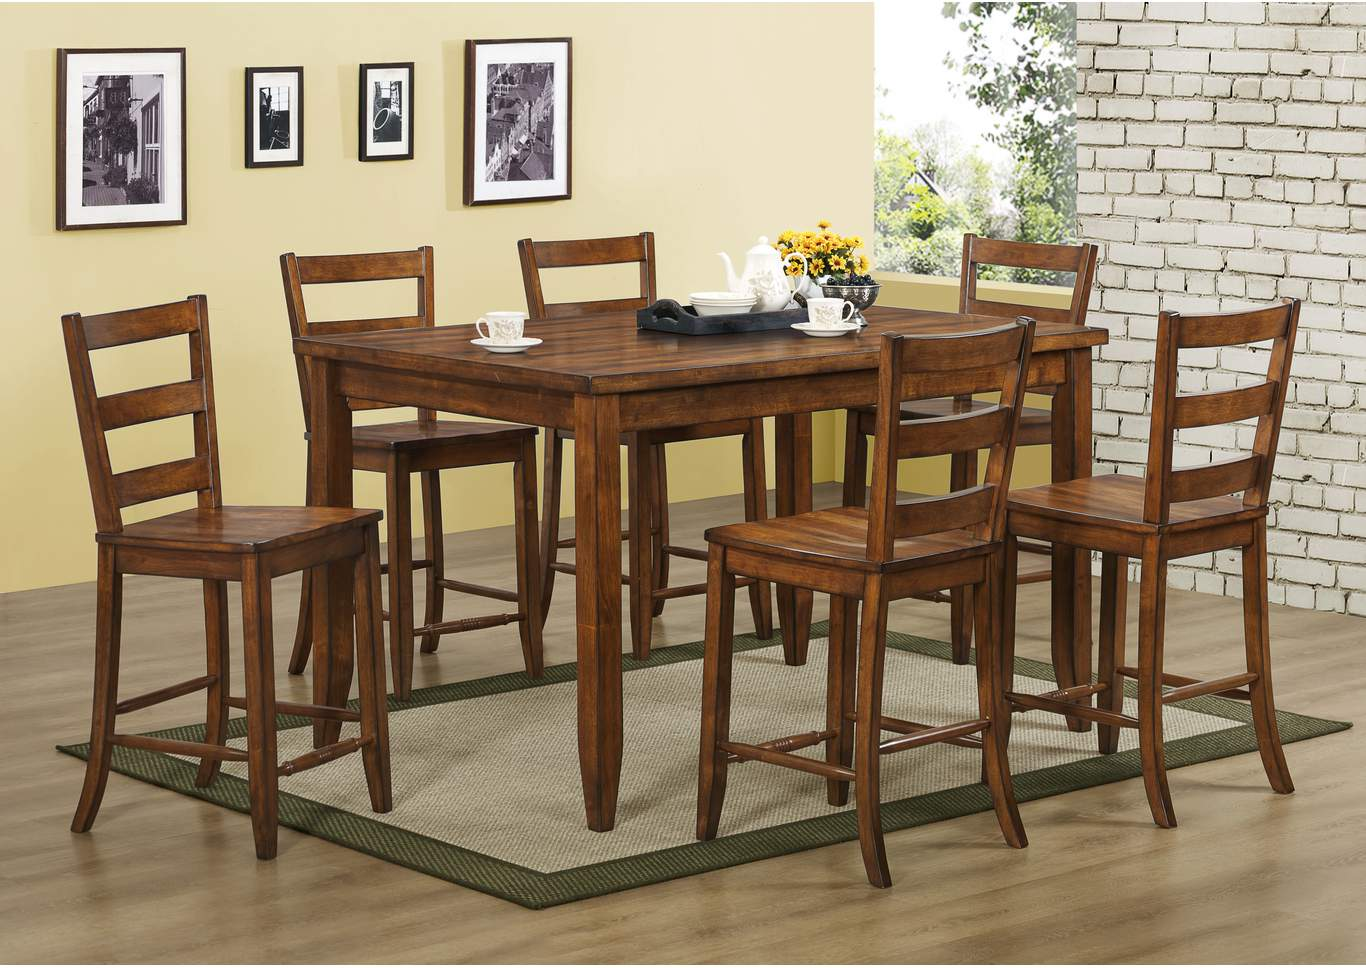 starfire counter height round dining room table w 4 counter height